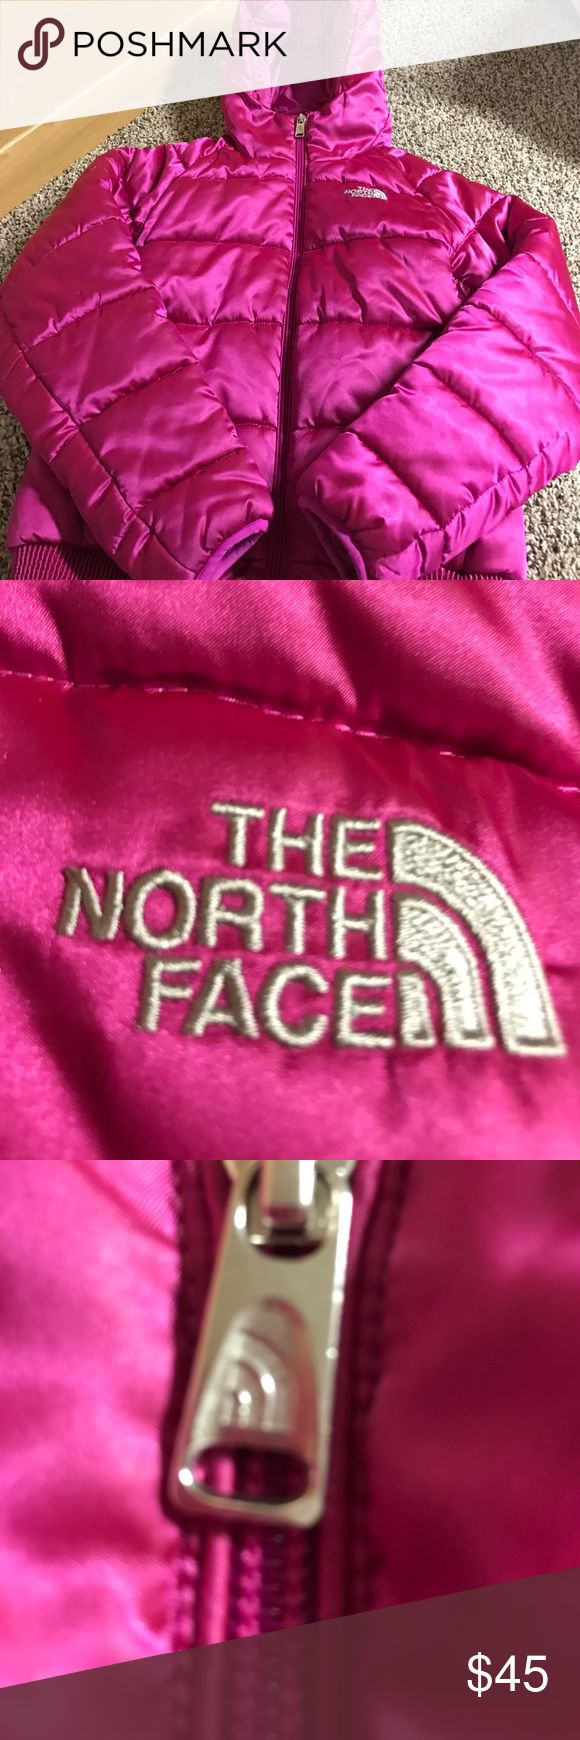 Girl's Authentic North Face Winter Coat WORN ONE WINTER!!!! Great overall condition girl's north face coat. No flaws, stains, etc. Authentic. Was $130 at Nordstrom. Inside name label has been colored over for privacy.  I also have a fall north face listed in the same size. I ❤ Negotiating North Face Jackets & Coats Puffers